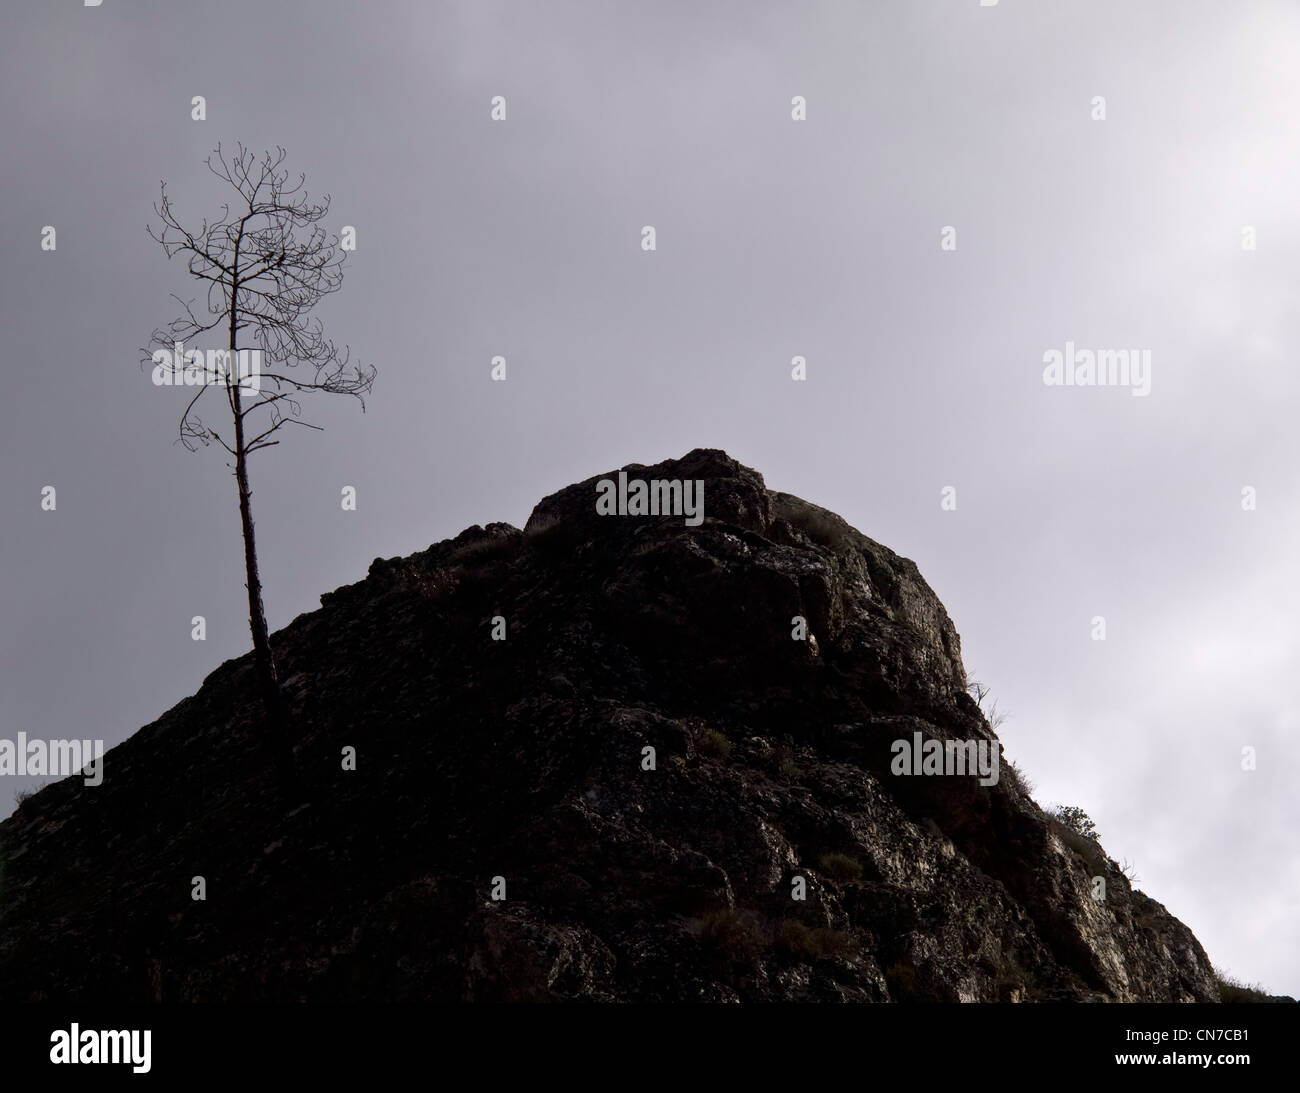 Negativity concept - lonely leafless tree against a cloudy and gloomy overcast sky - Stock Image